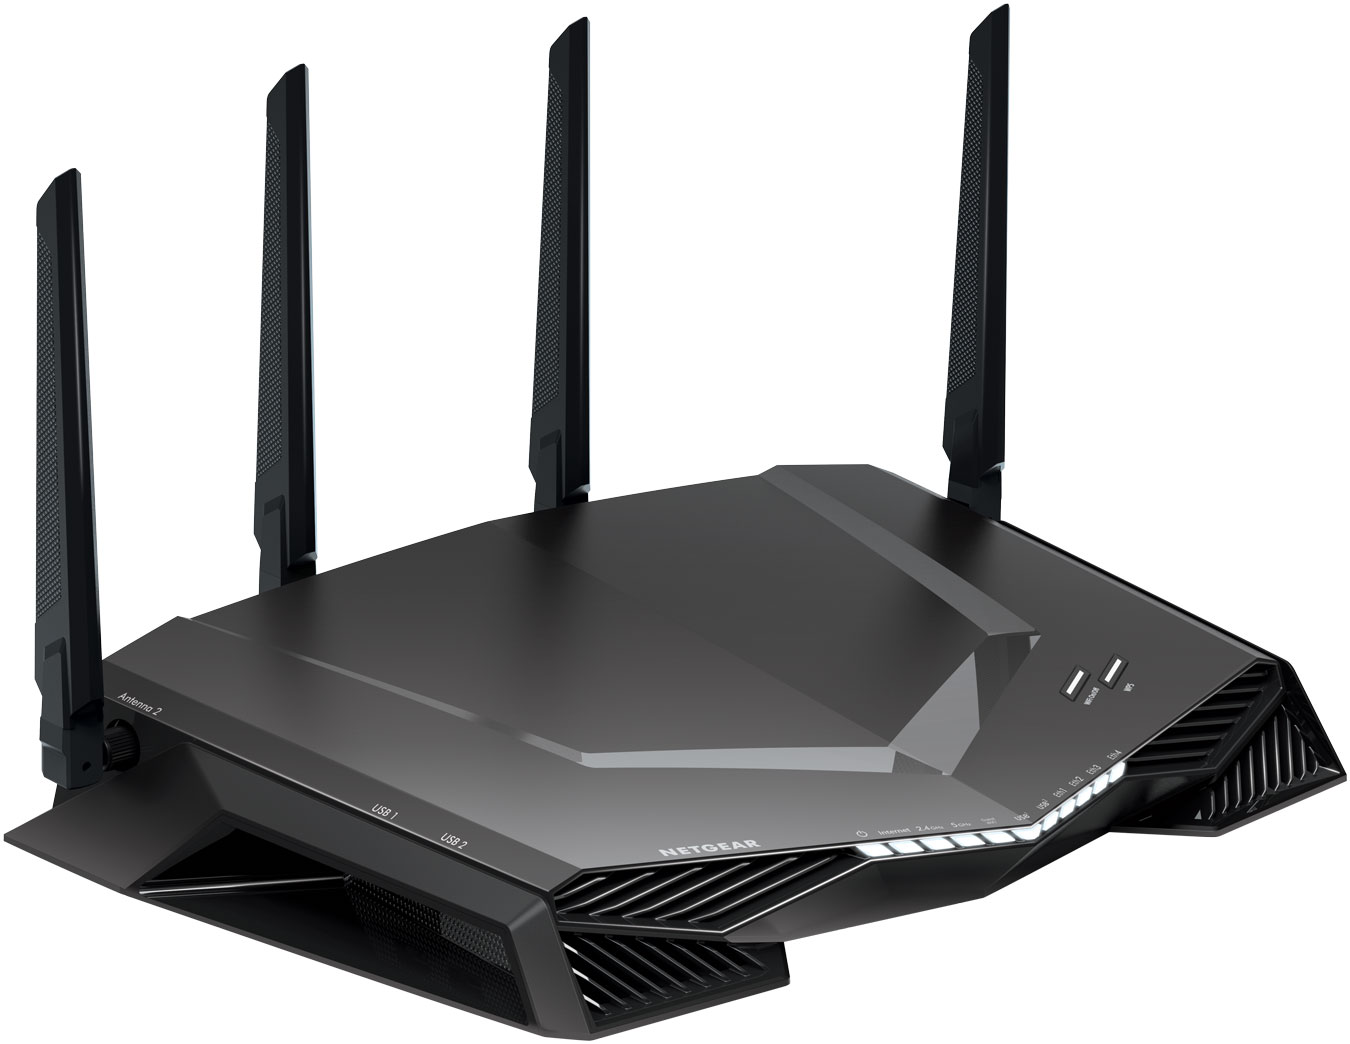 netgear launches attack against lag with nighthawk pro. Black Bedroom Furniture Sets. Home Design Ideas